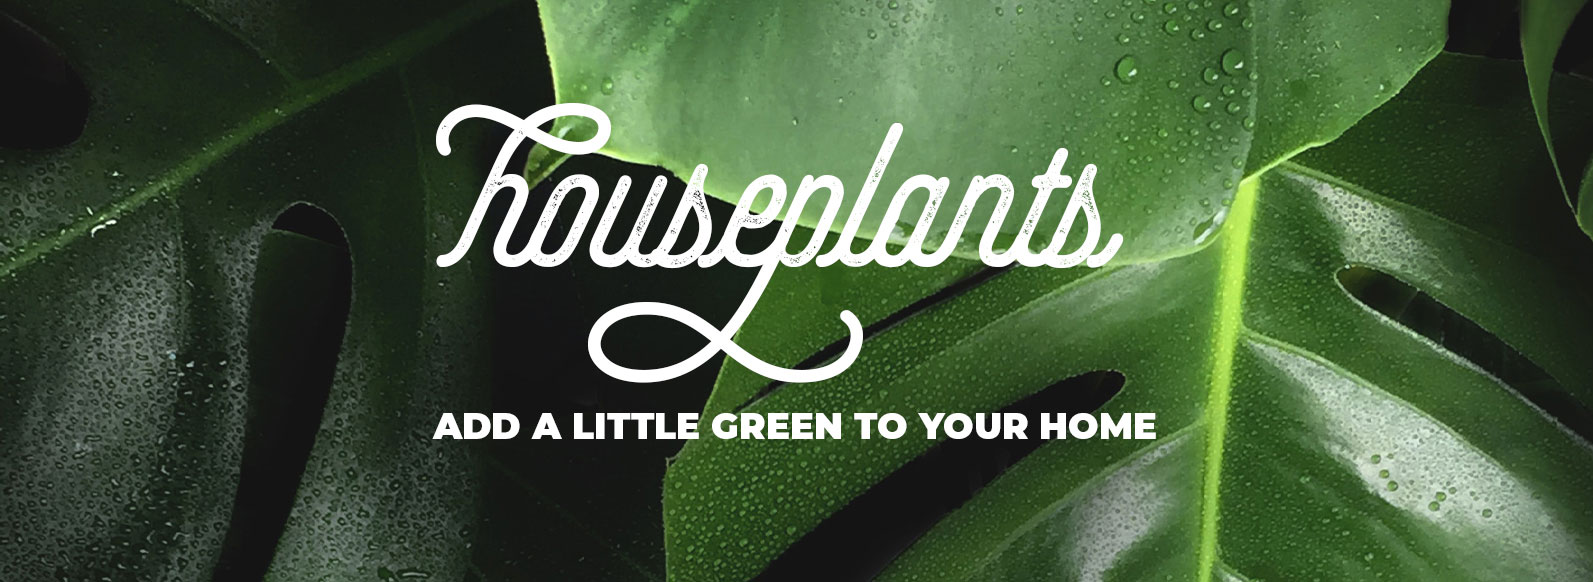 House Plants - add a little green to your home.